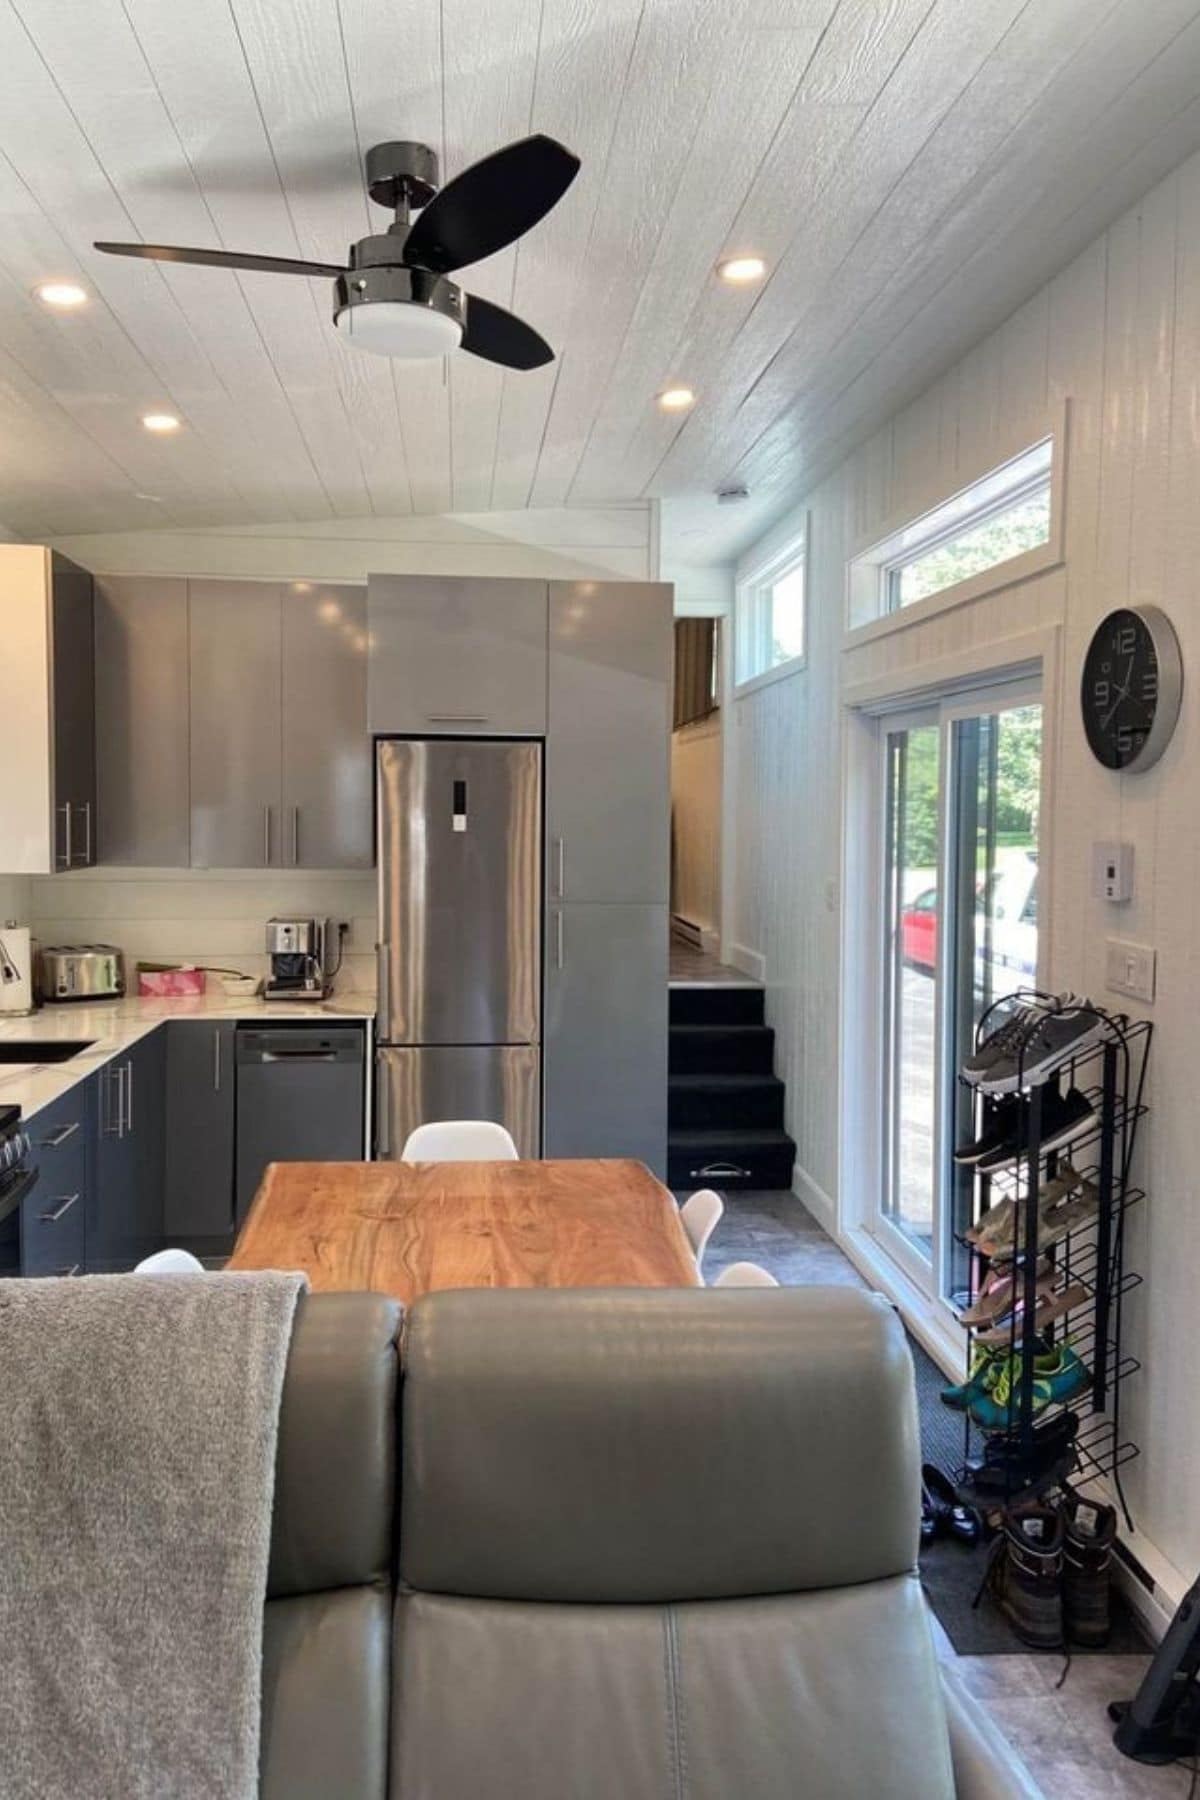 View into kitchen from tiny living room